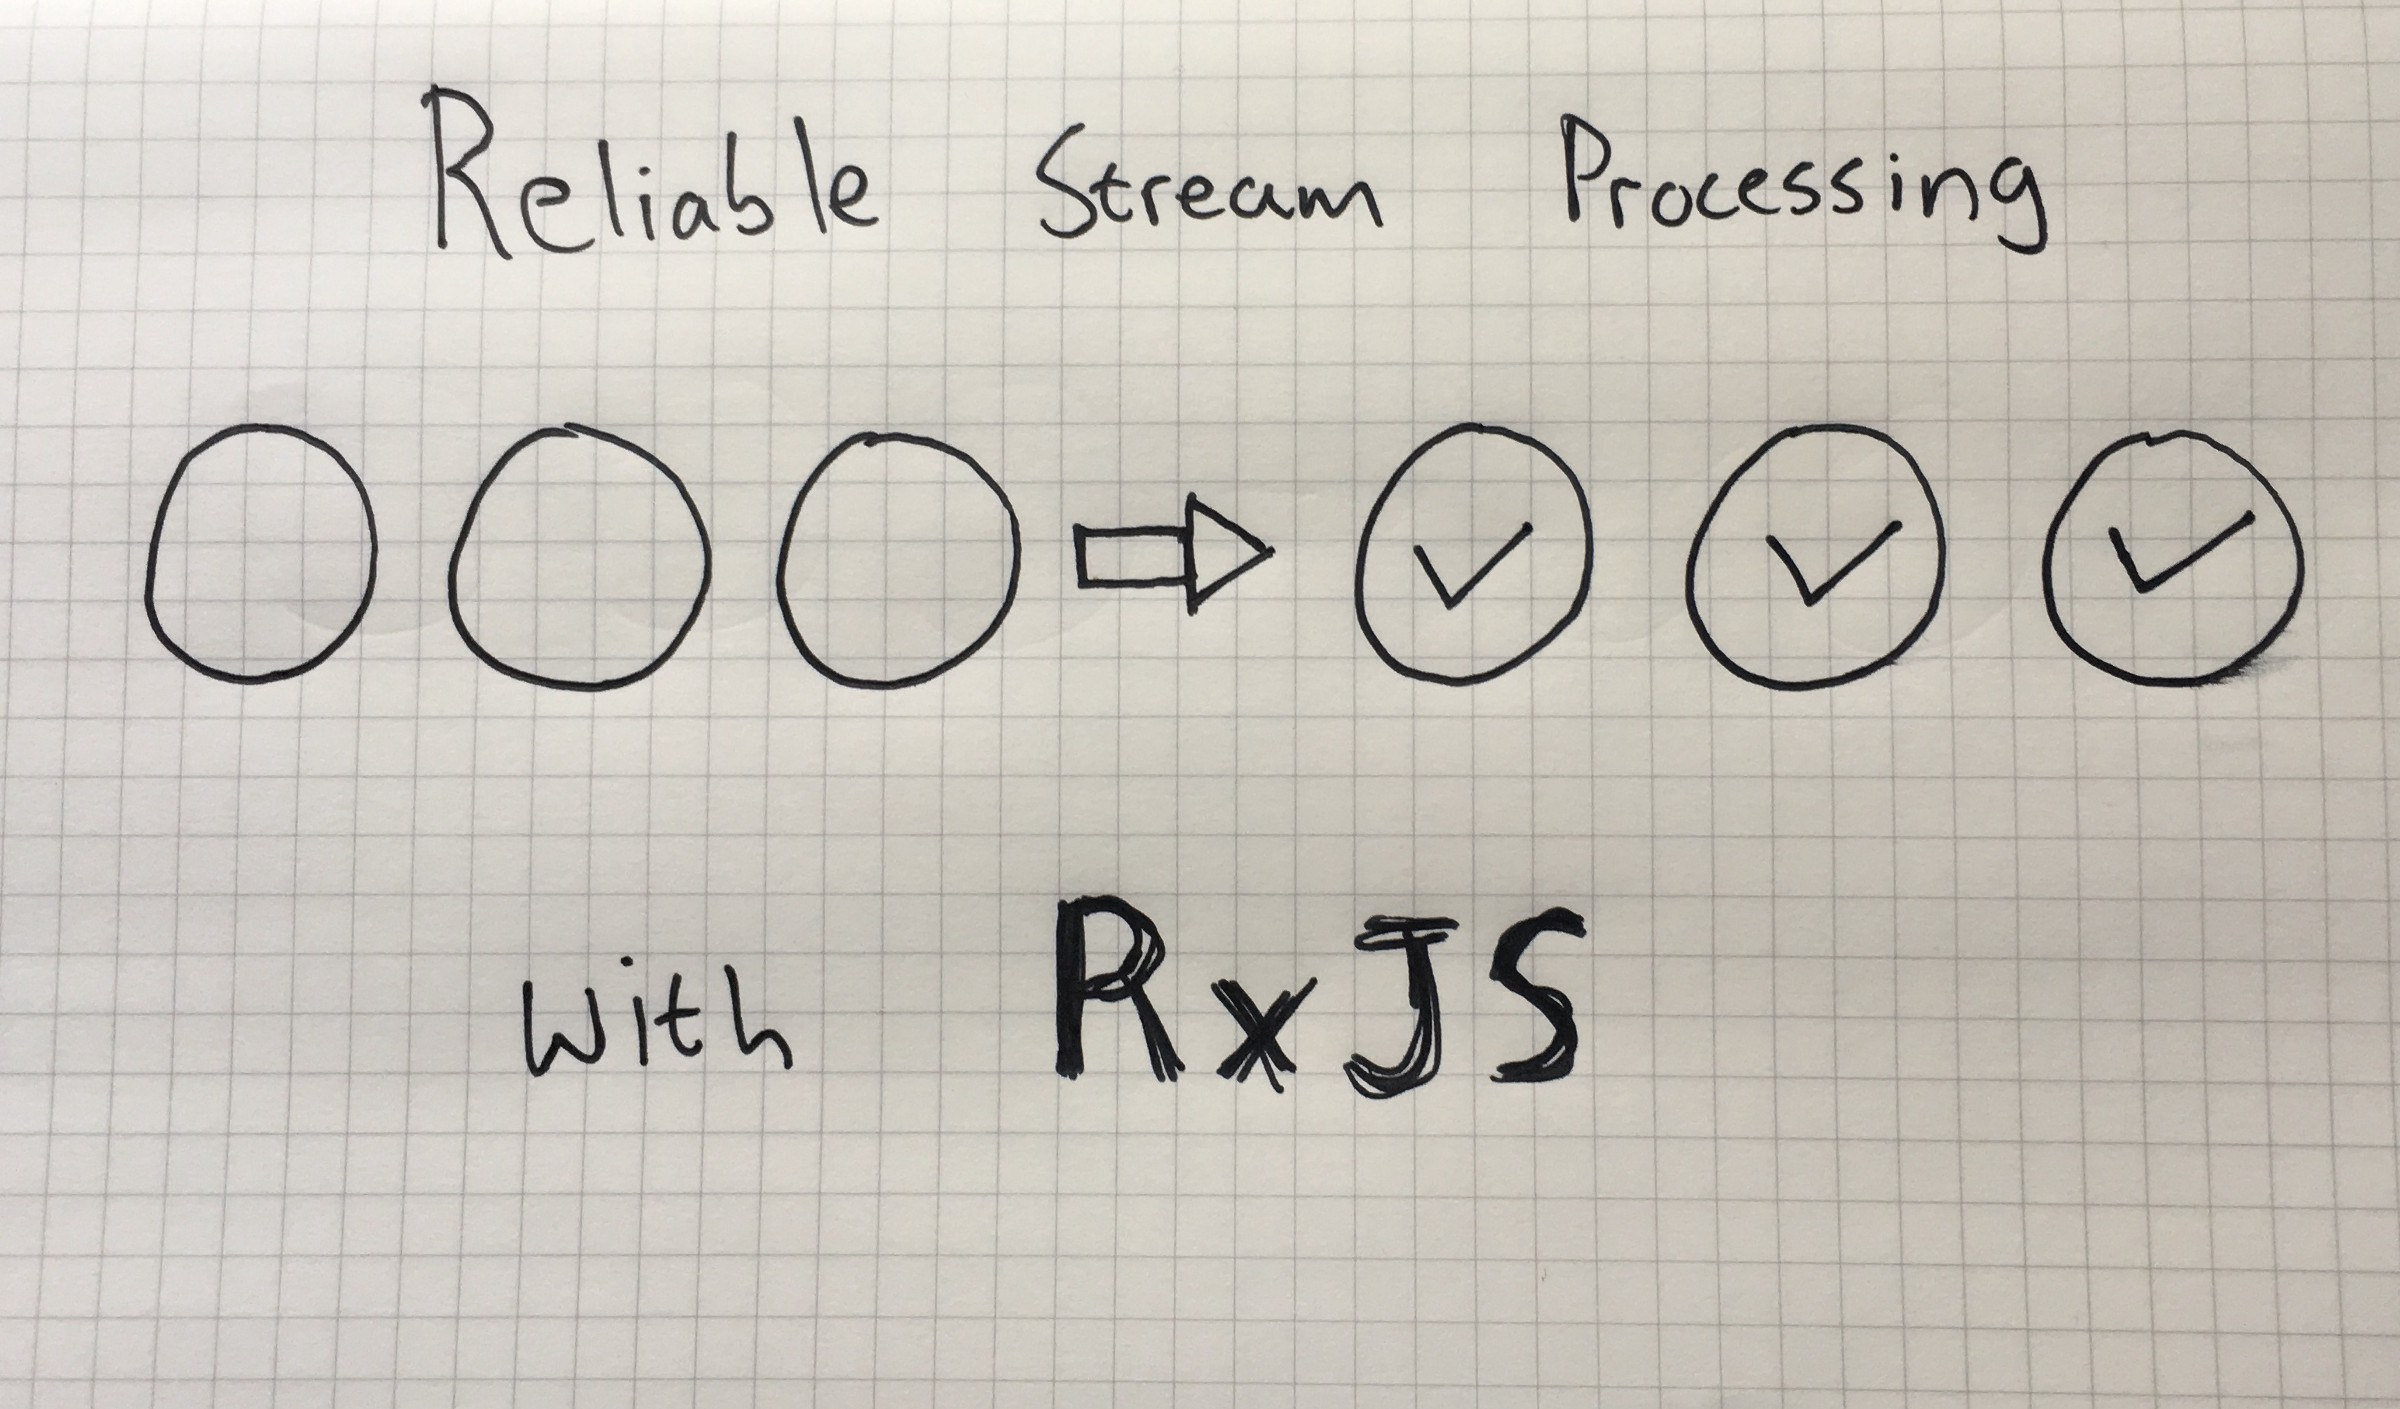 A semi quick guide to Reliable Stream Processing with RxJS - By